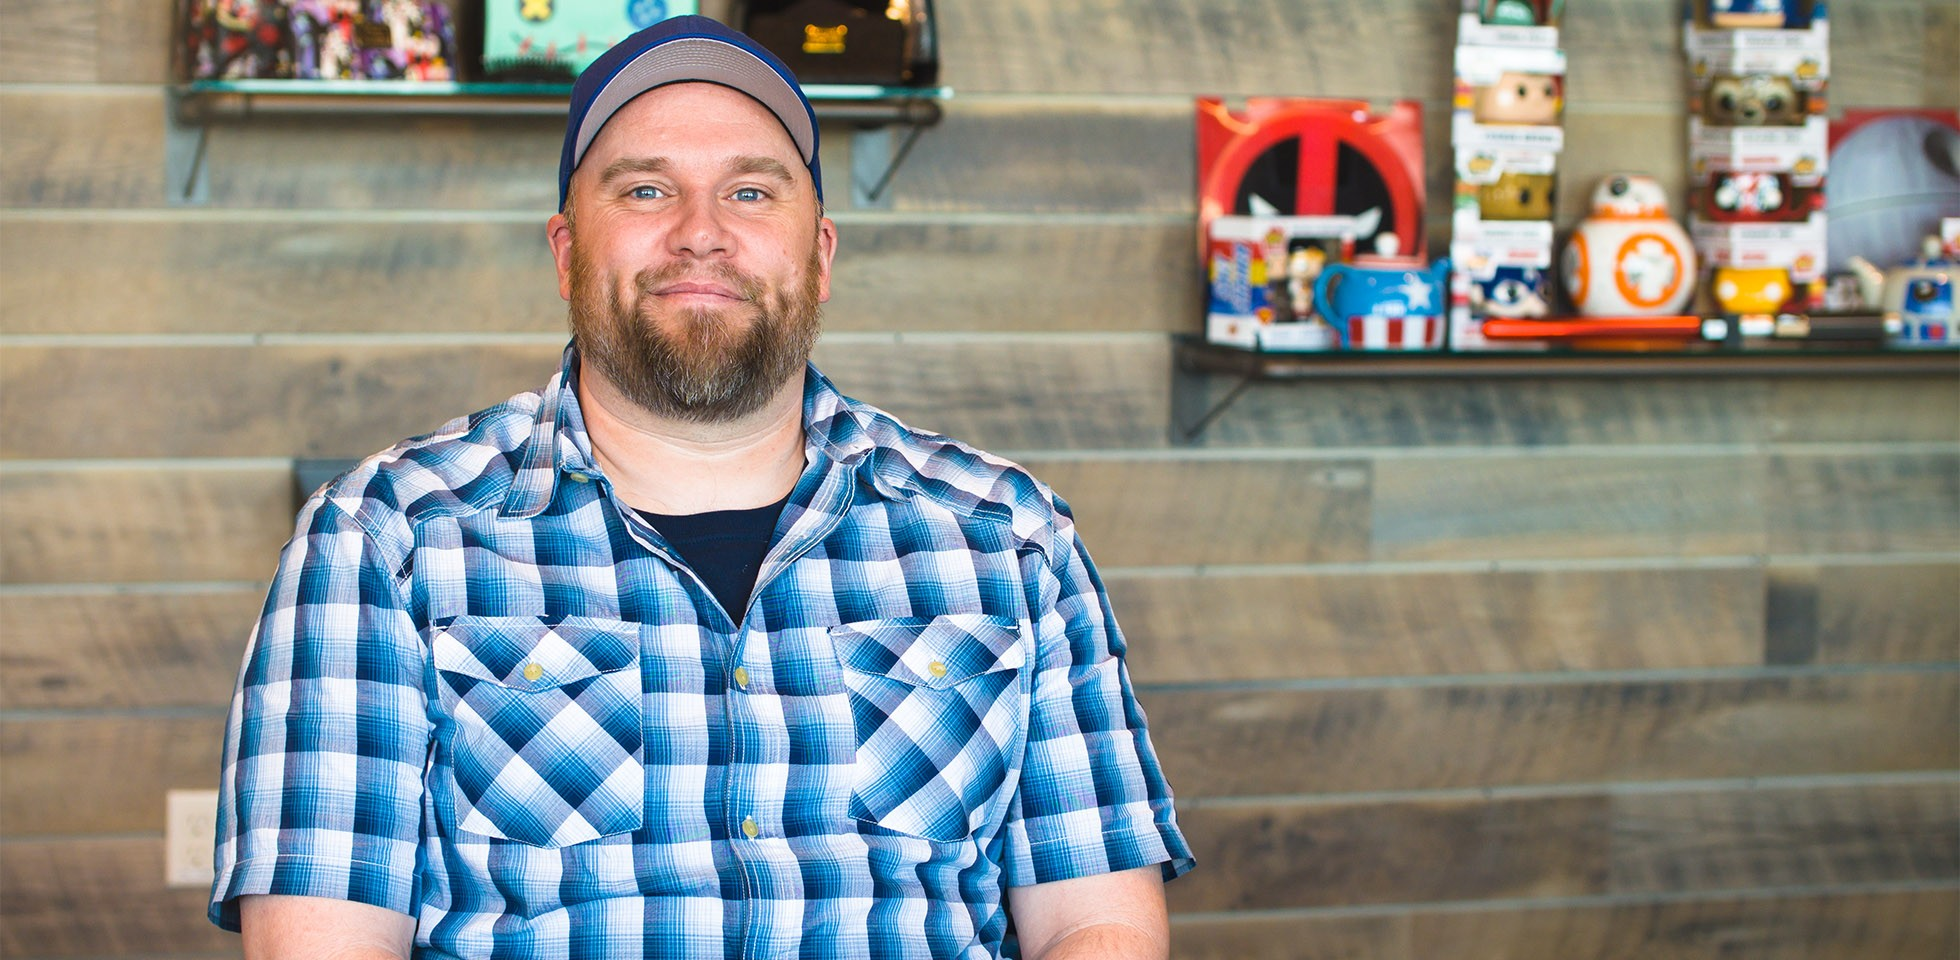 Chris Sully, Community Marketing Manager - Funko Careers